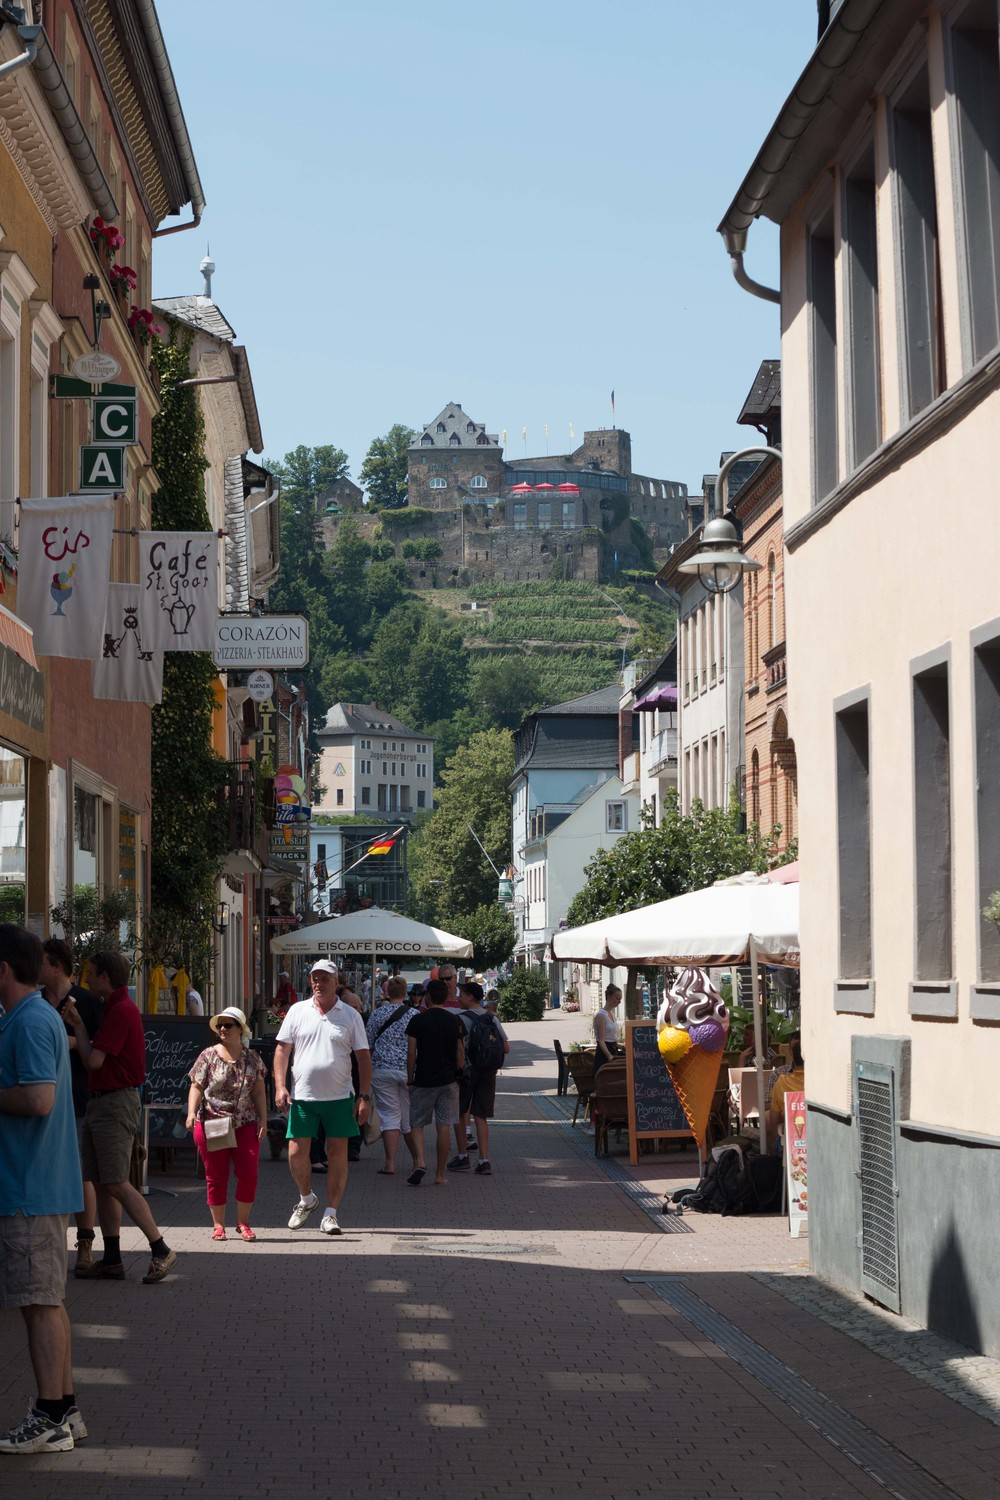 Center street of Sankt Goar